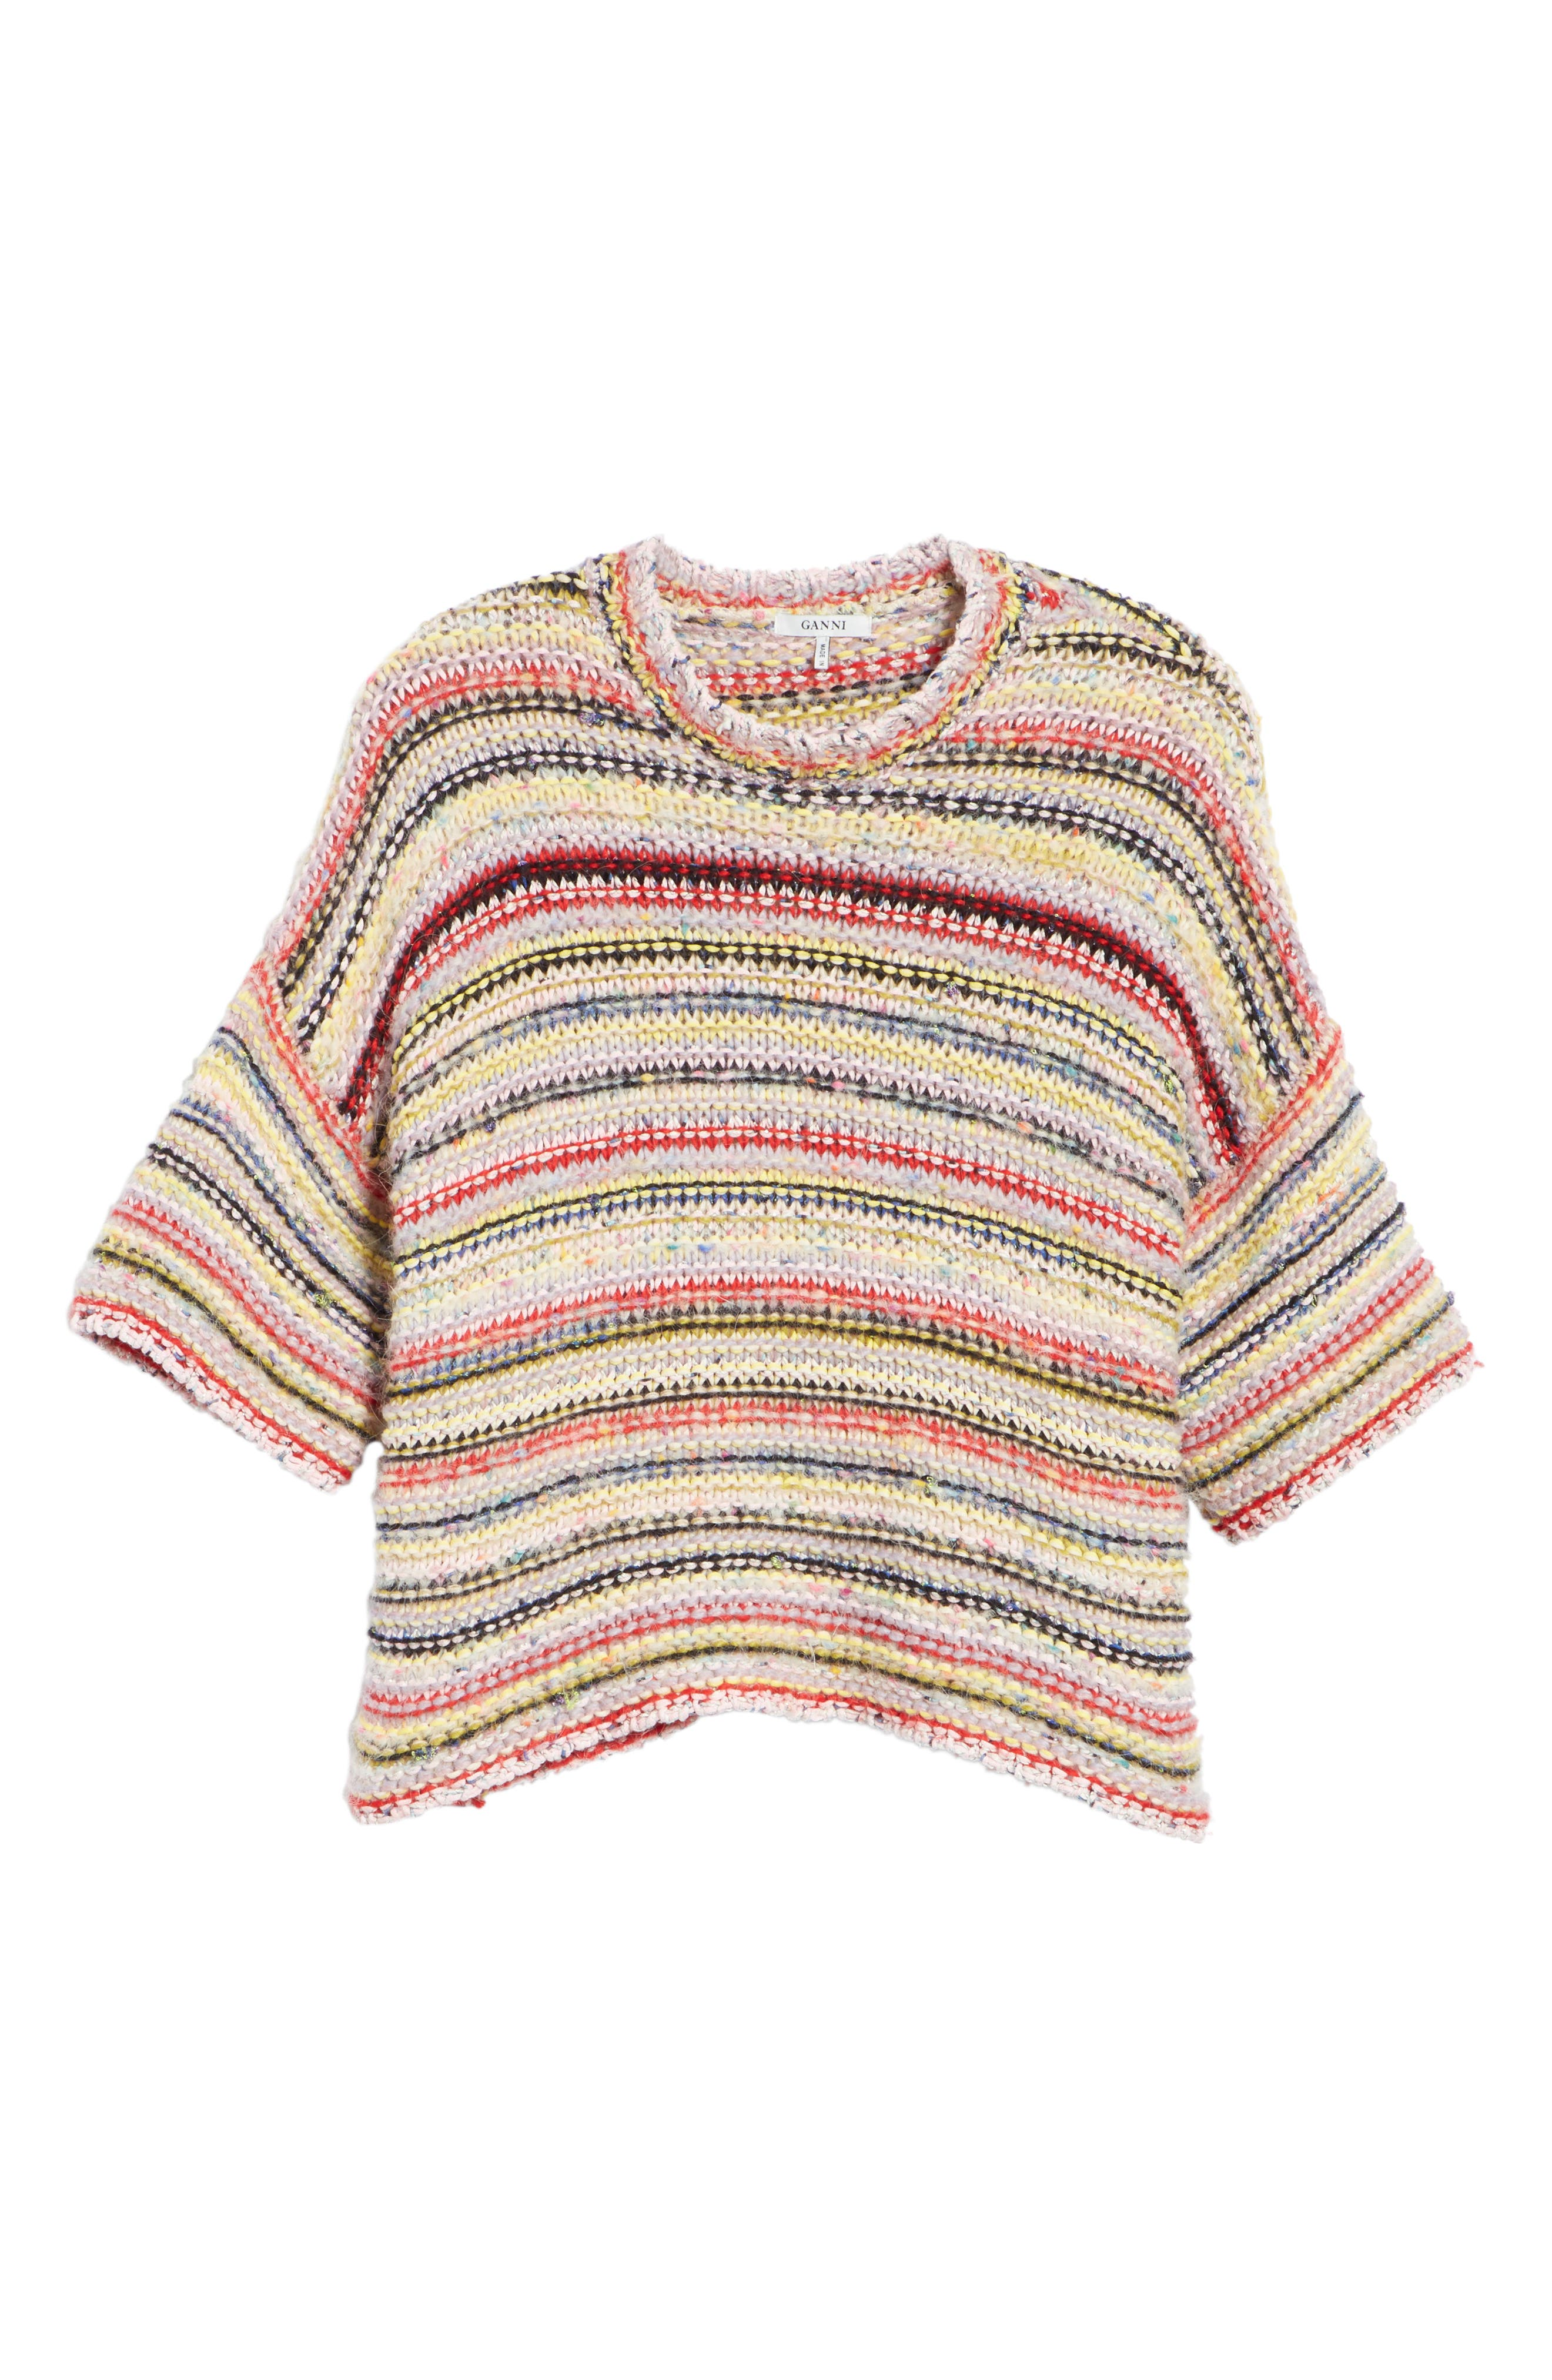 Mixed Knit Sweater,                             Alternate thumbnail 6, color,                             MULTICOLOUR 999